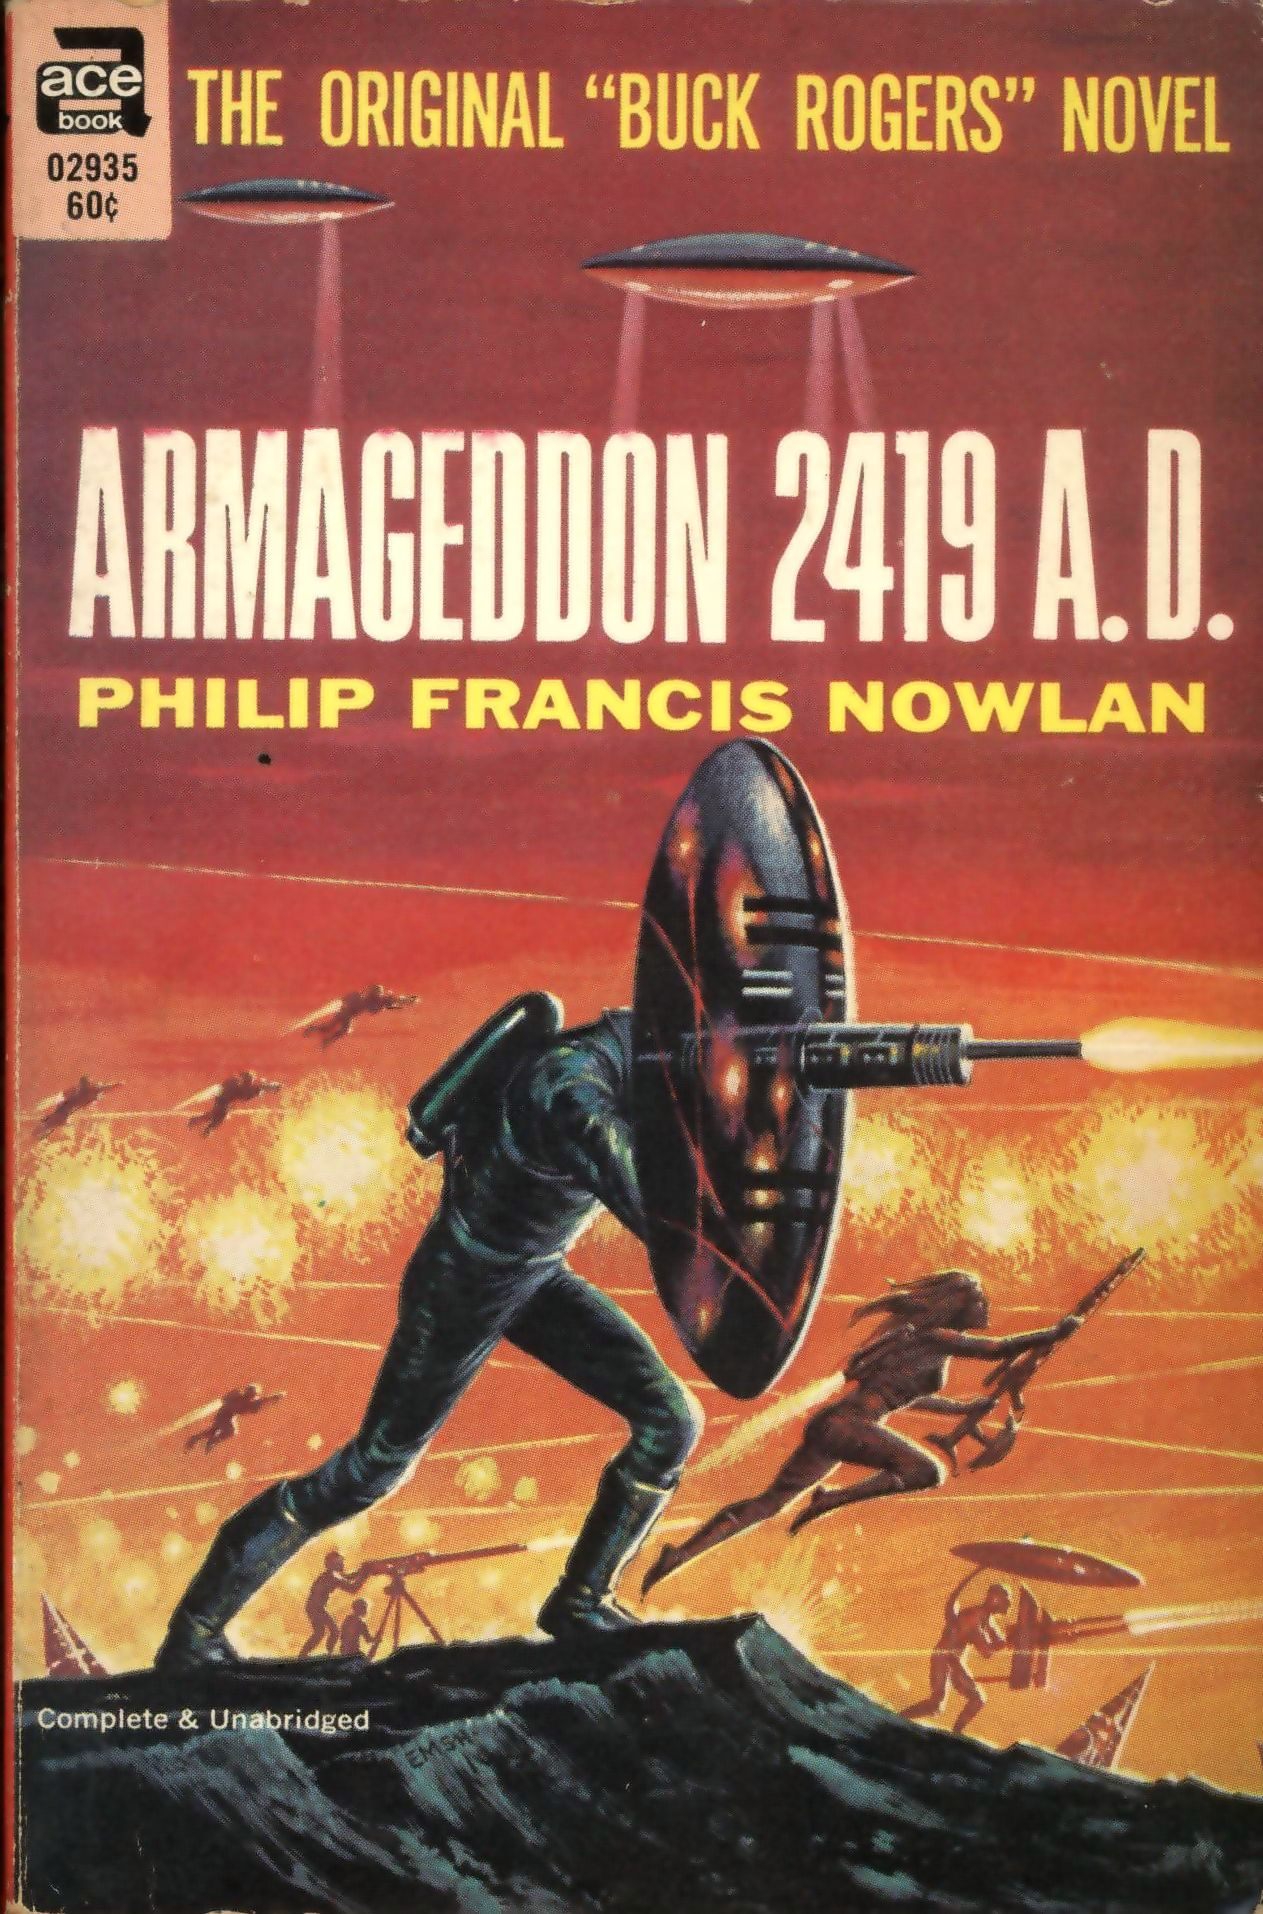 Reprint edition from the 1960s, which combines  Armageddon 2419 A.D.  and  The Airlords of Han .